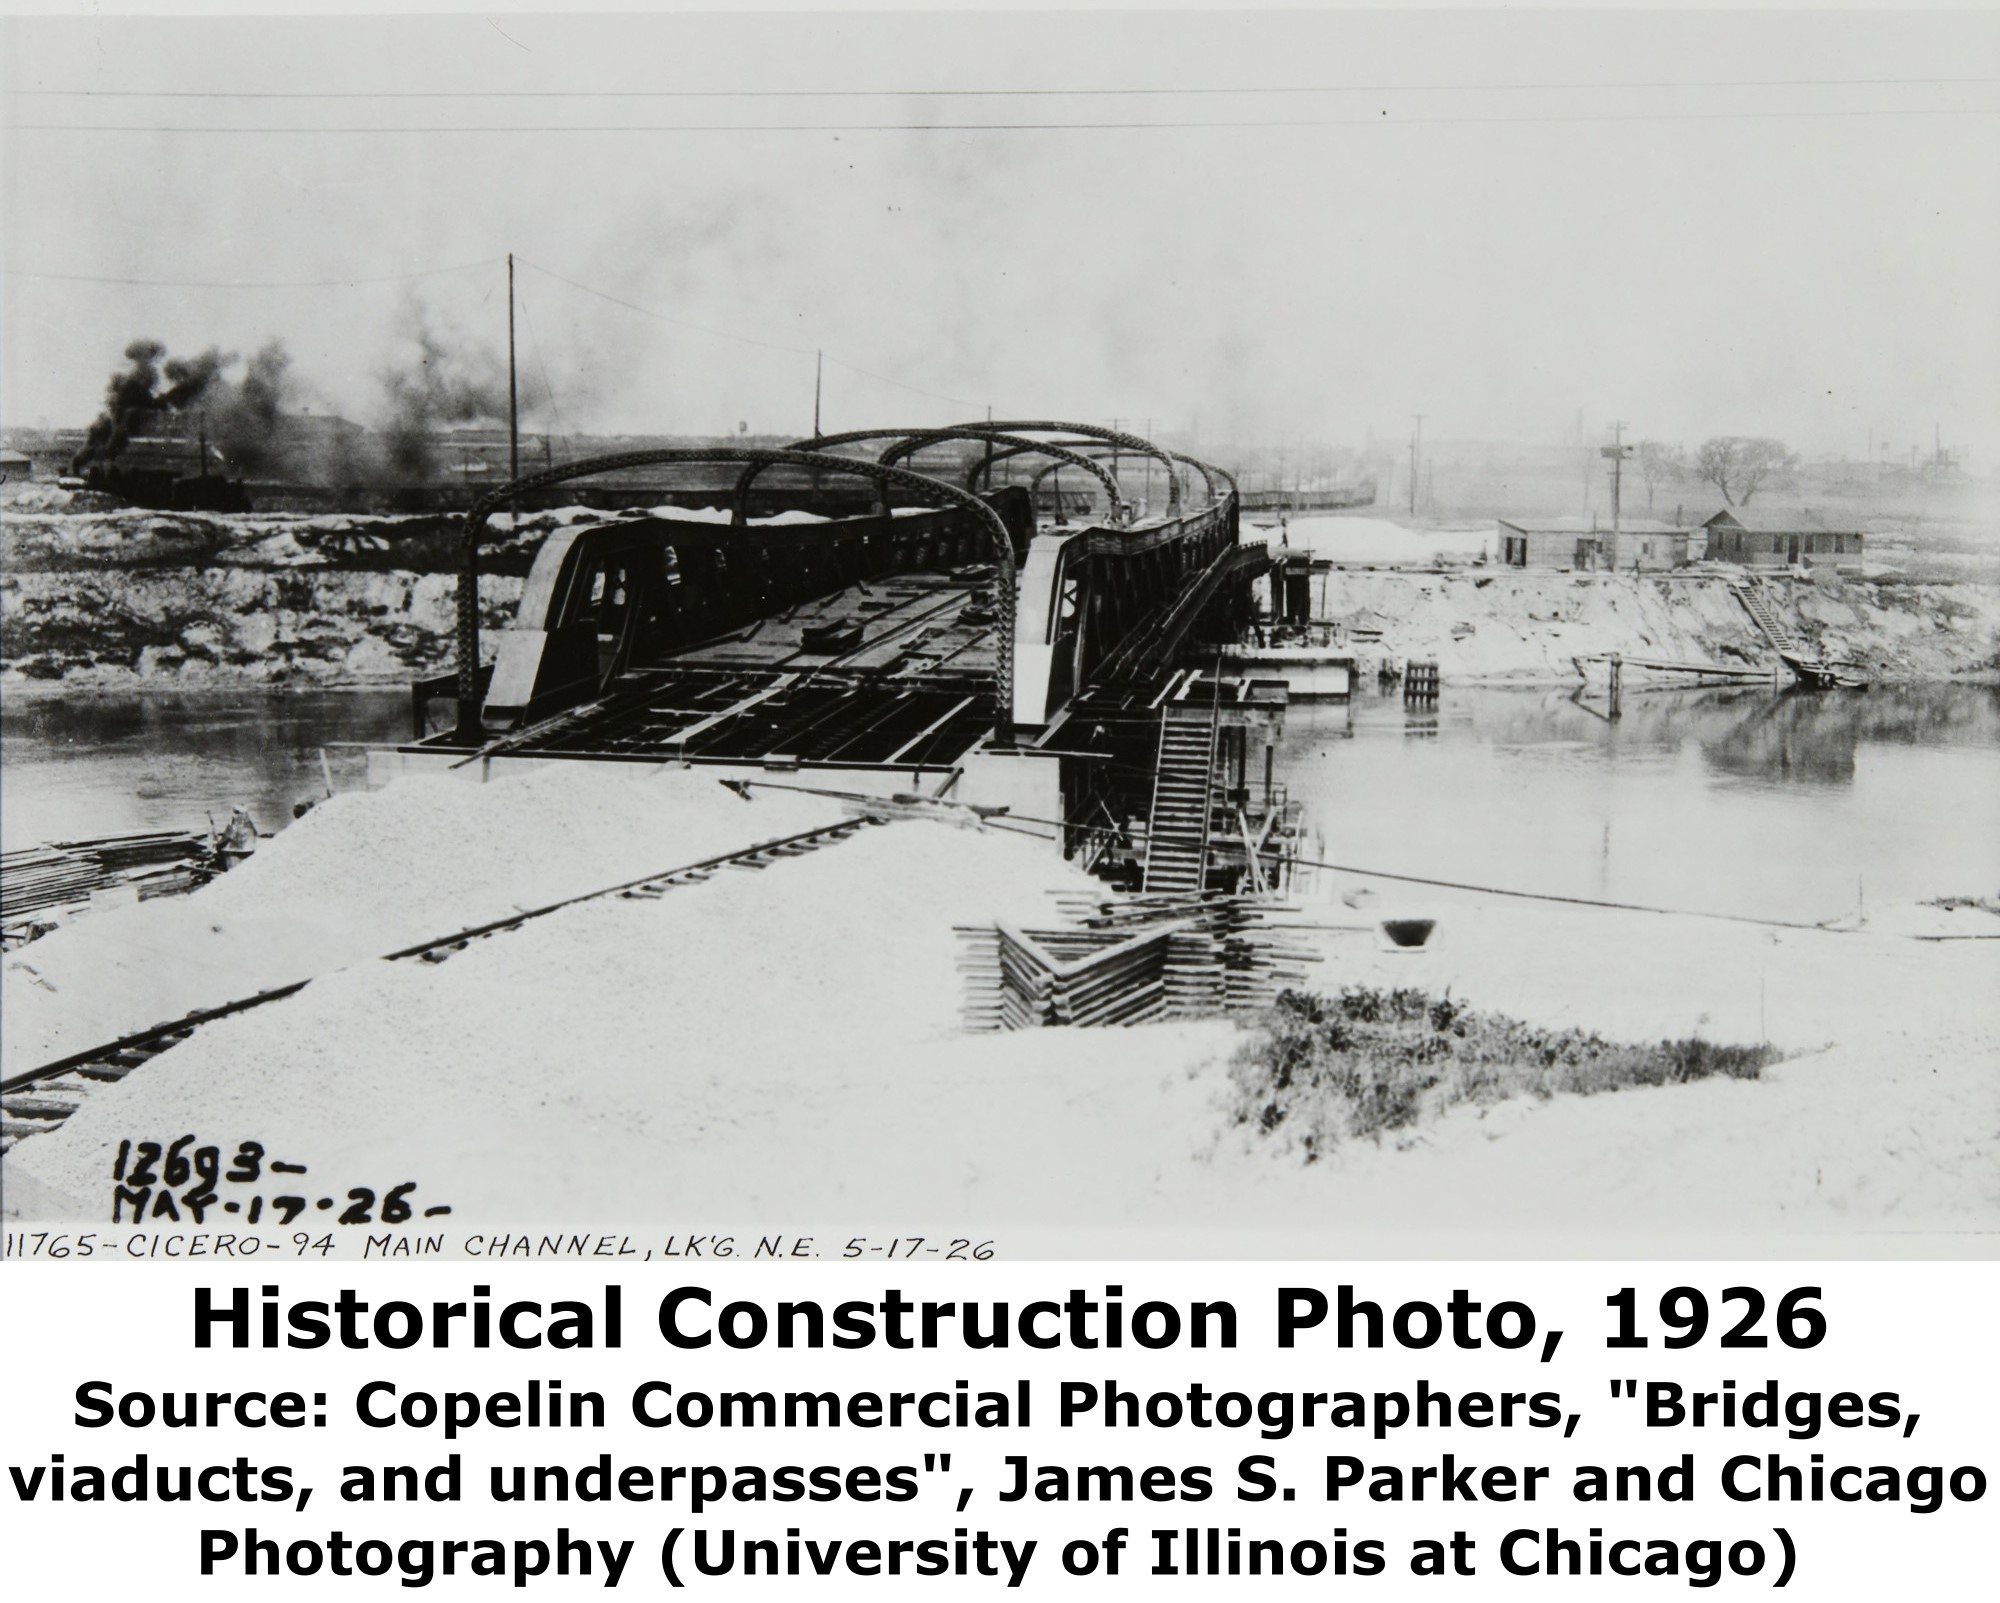 Illinois cook county cicero - Above This Photo Shows The Bridge Under Construction But Nearly Completed